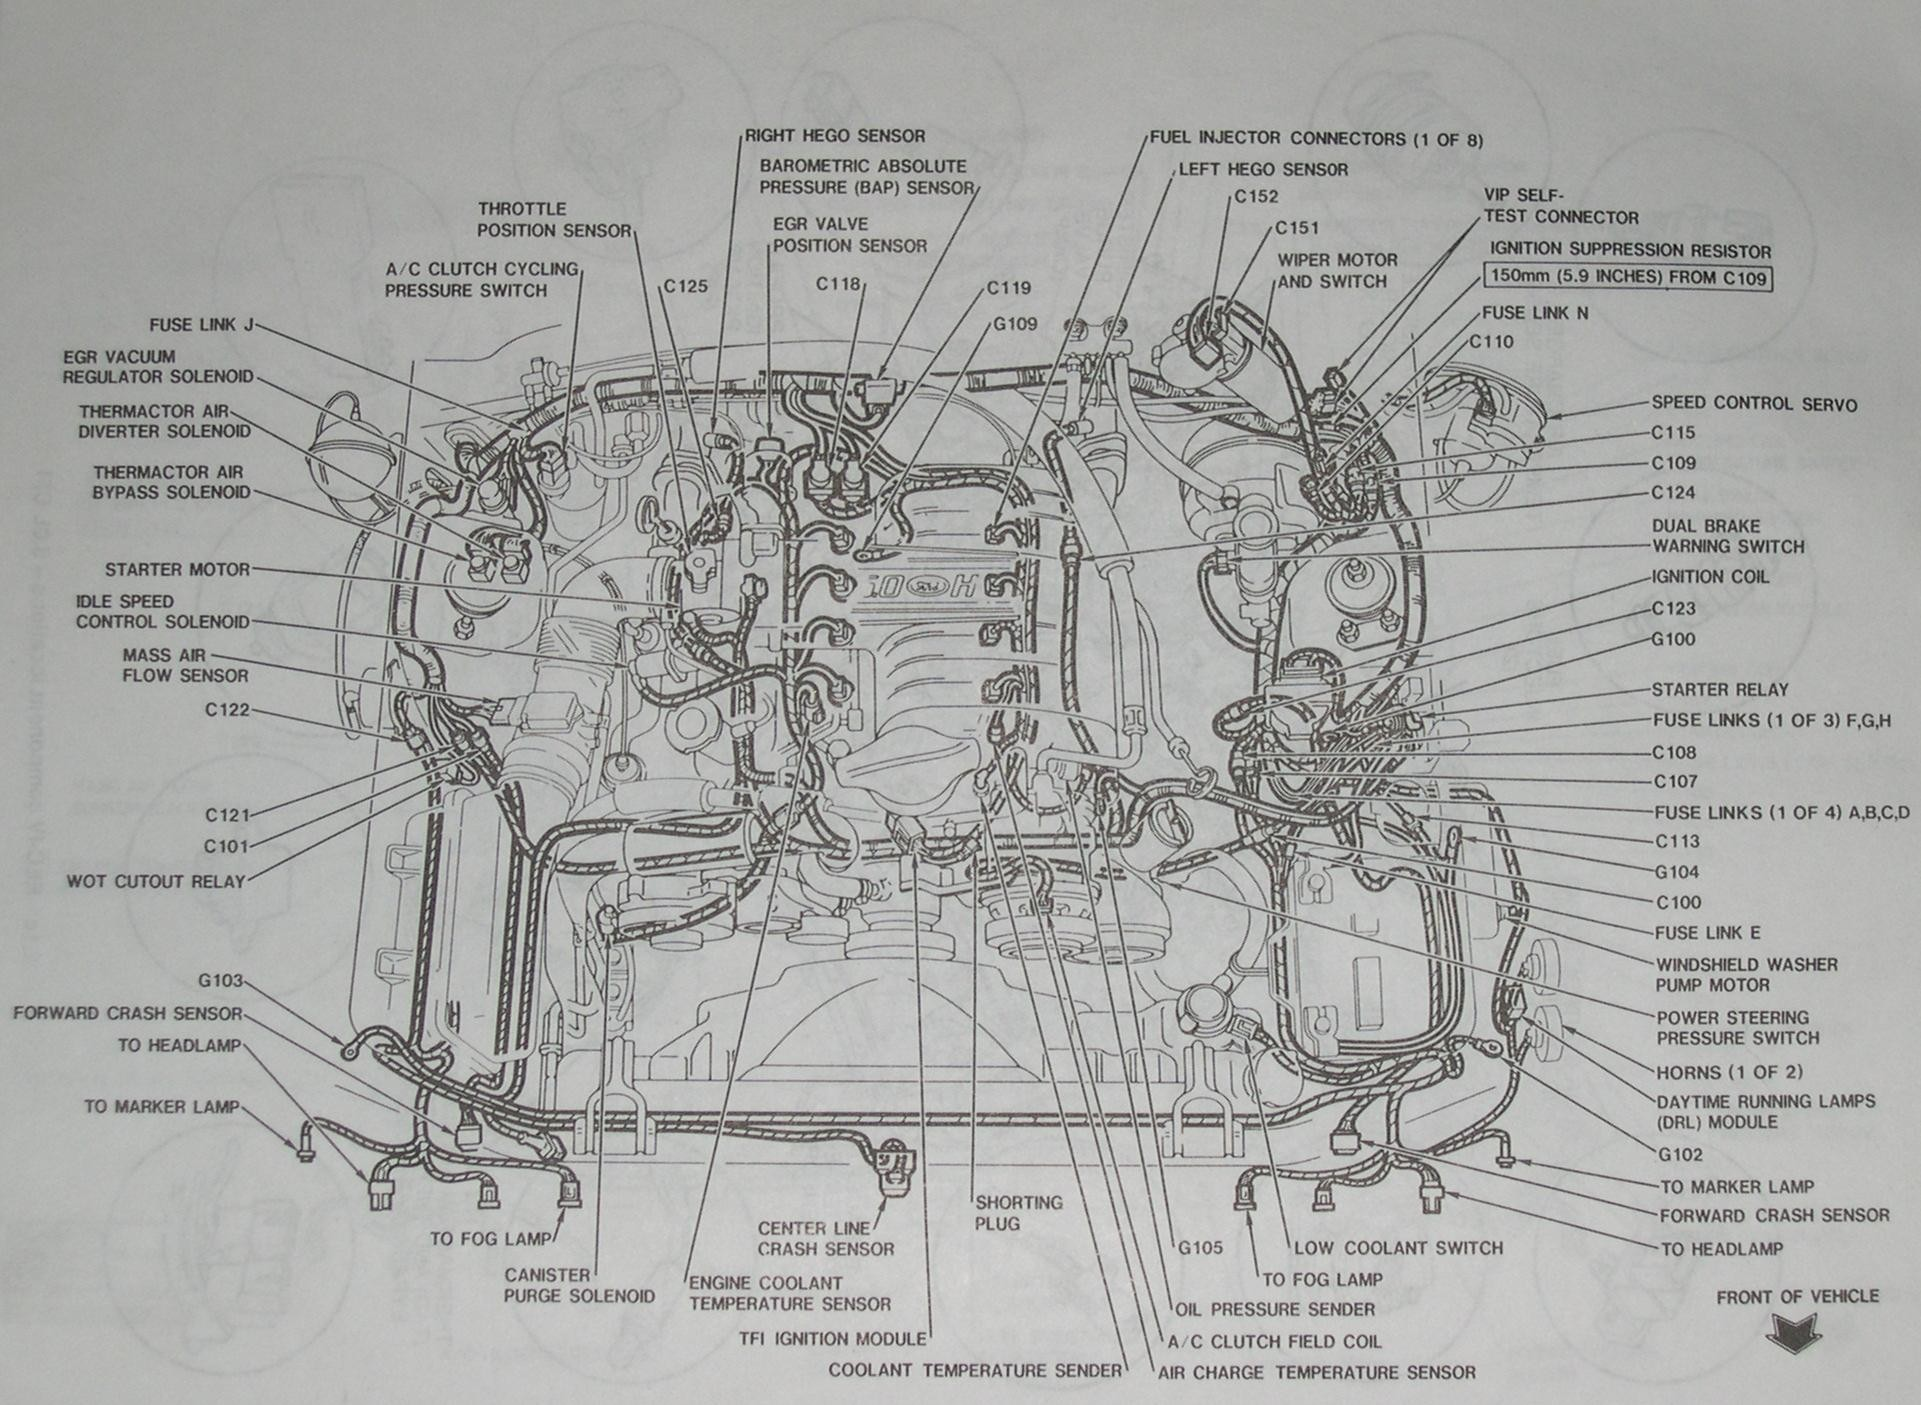 2001 Ford Mustang V6 Engine Diagram - Wiring Diagram Article  V Engine Wiring Diagram on